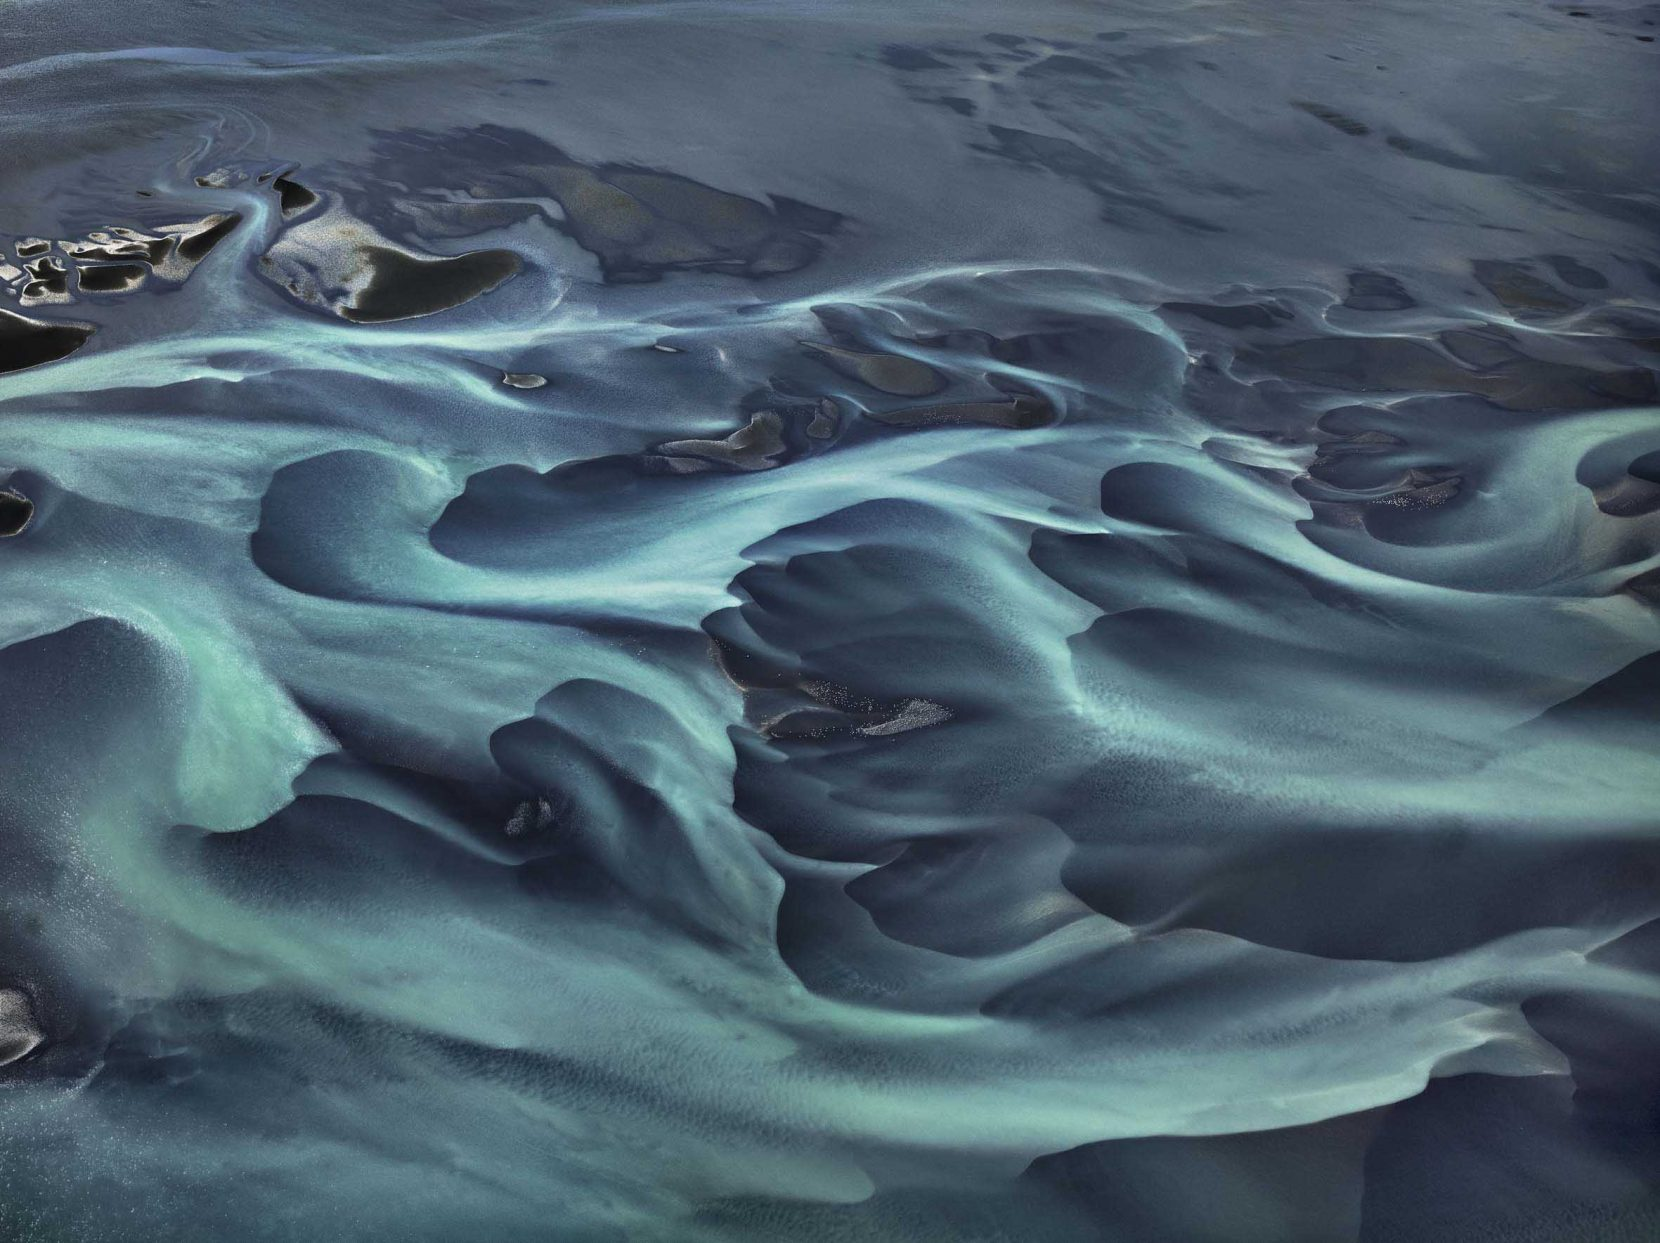 edward_burtynsky-called-water-photo-of-the-week-losko